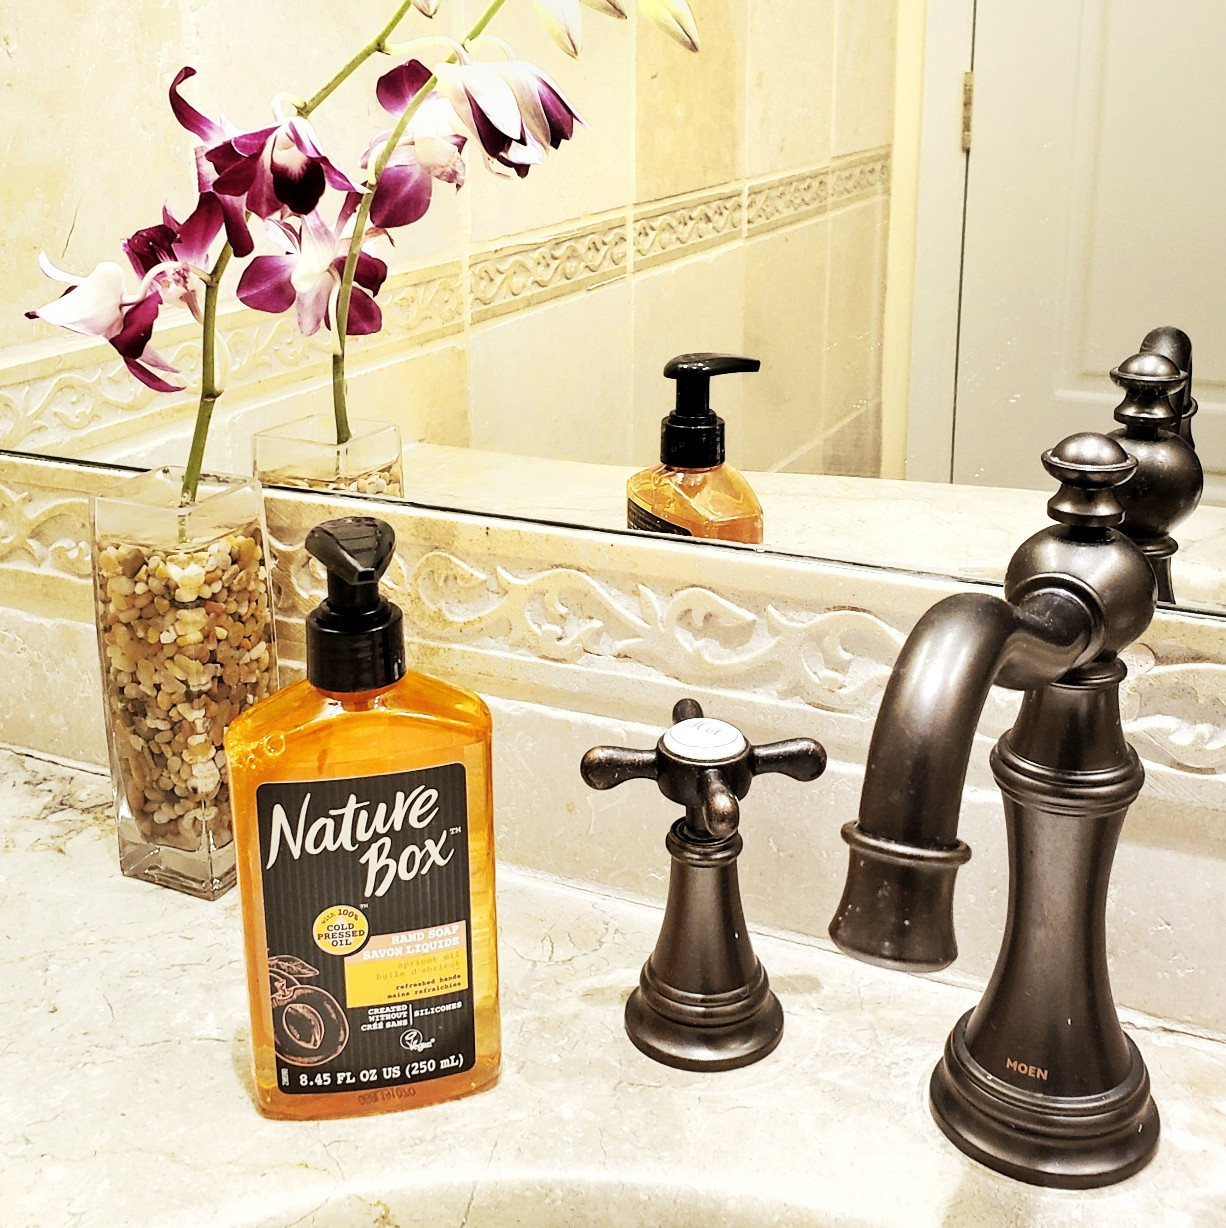 Nature Box Beauty™ Apricot Oil Hand Soap for Bathrooms